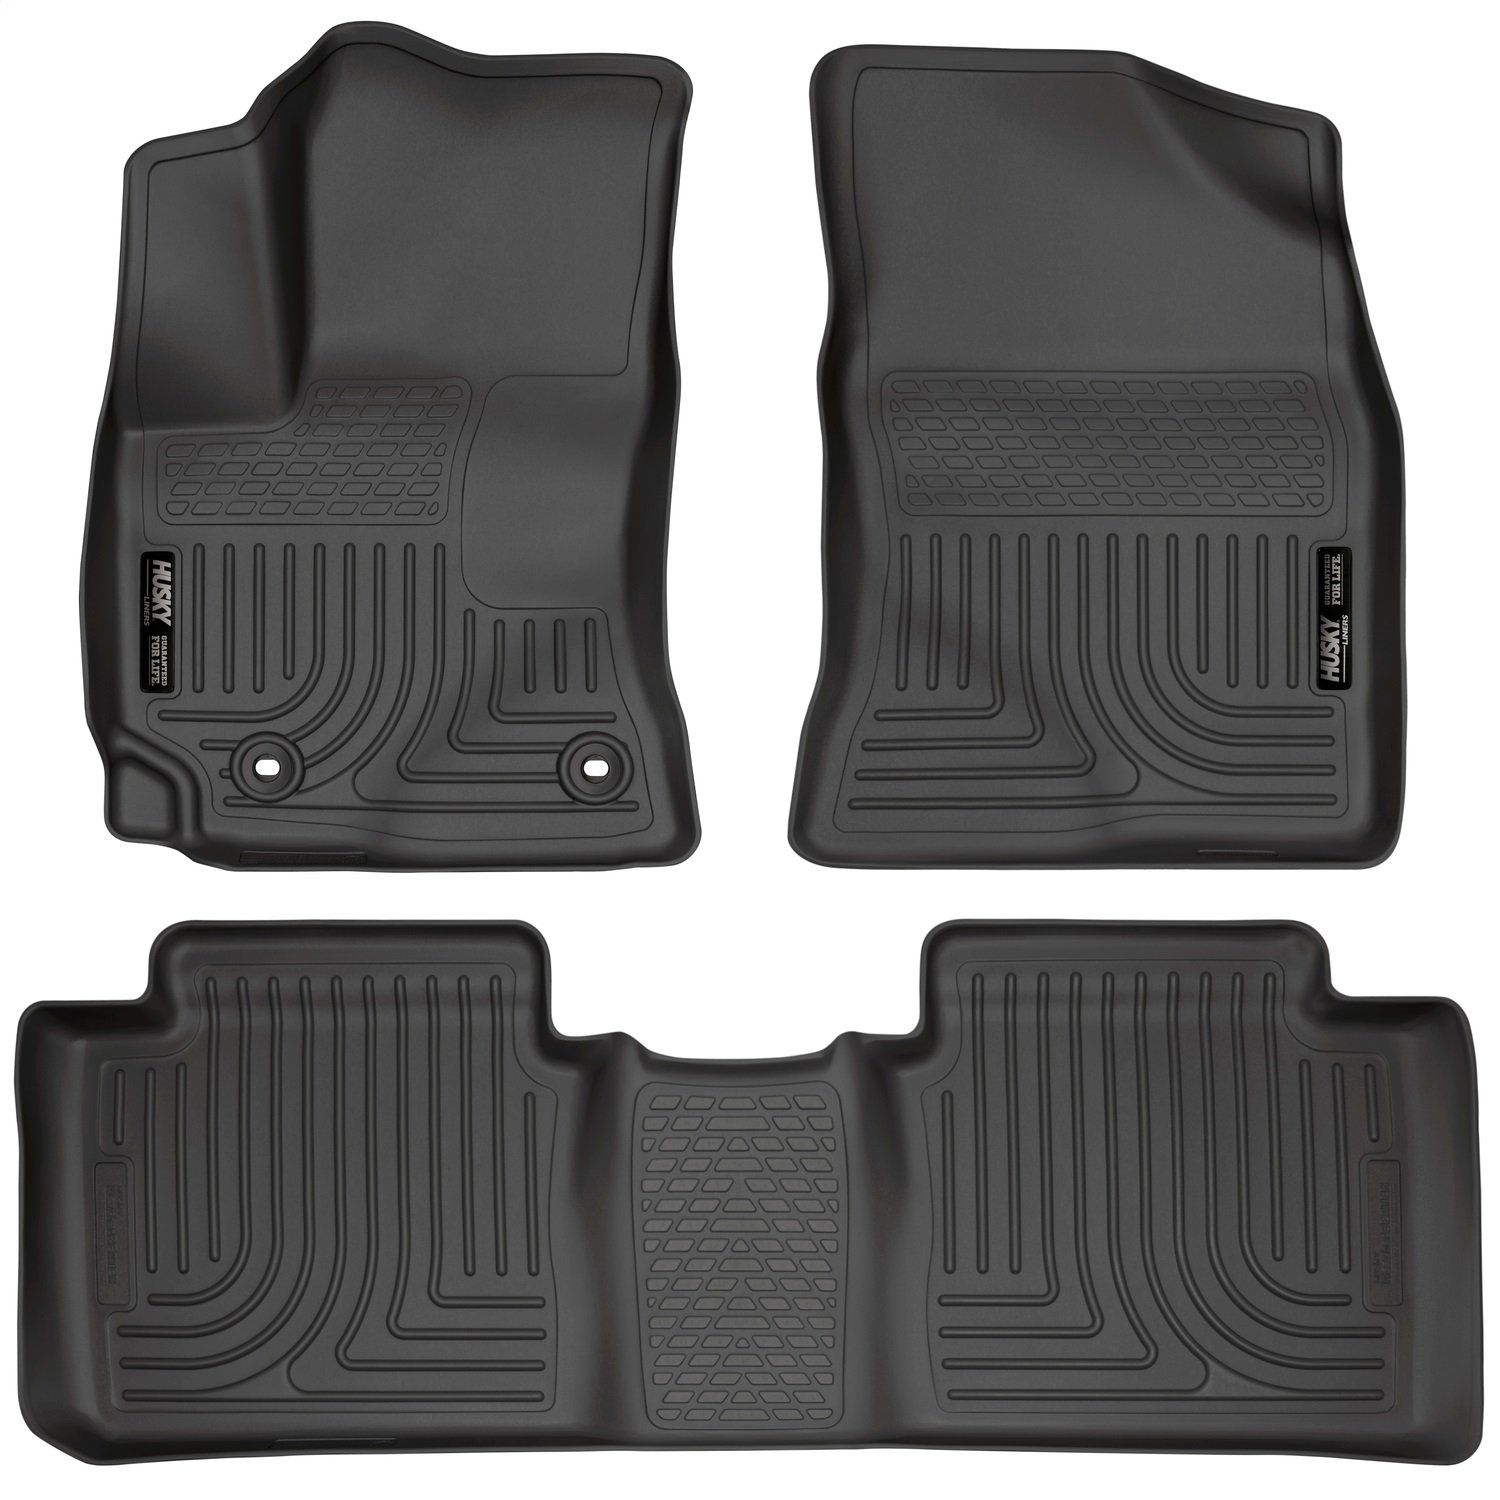 71vVxb%2B7xzL._SL1500_ Cool Review About 2006 toyota Corolla Floor Mats with Mesmerizing Pictures Cars Review